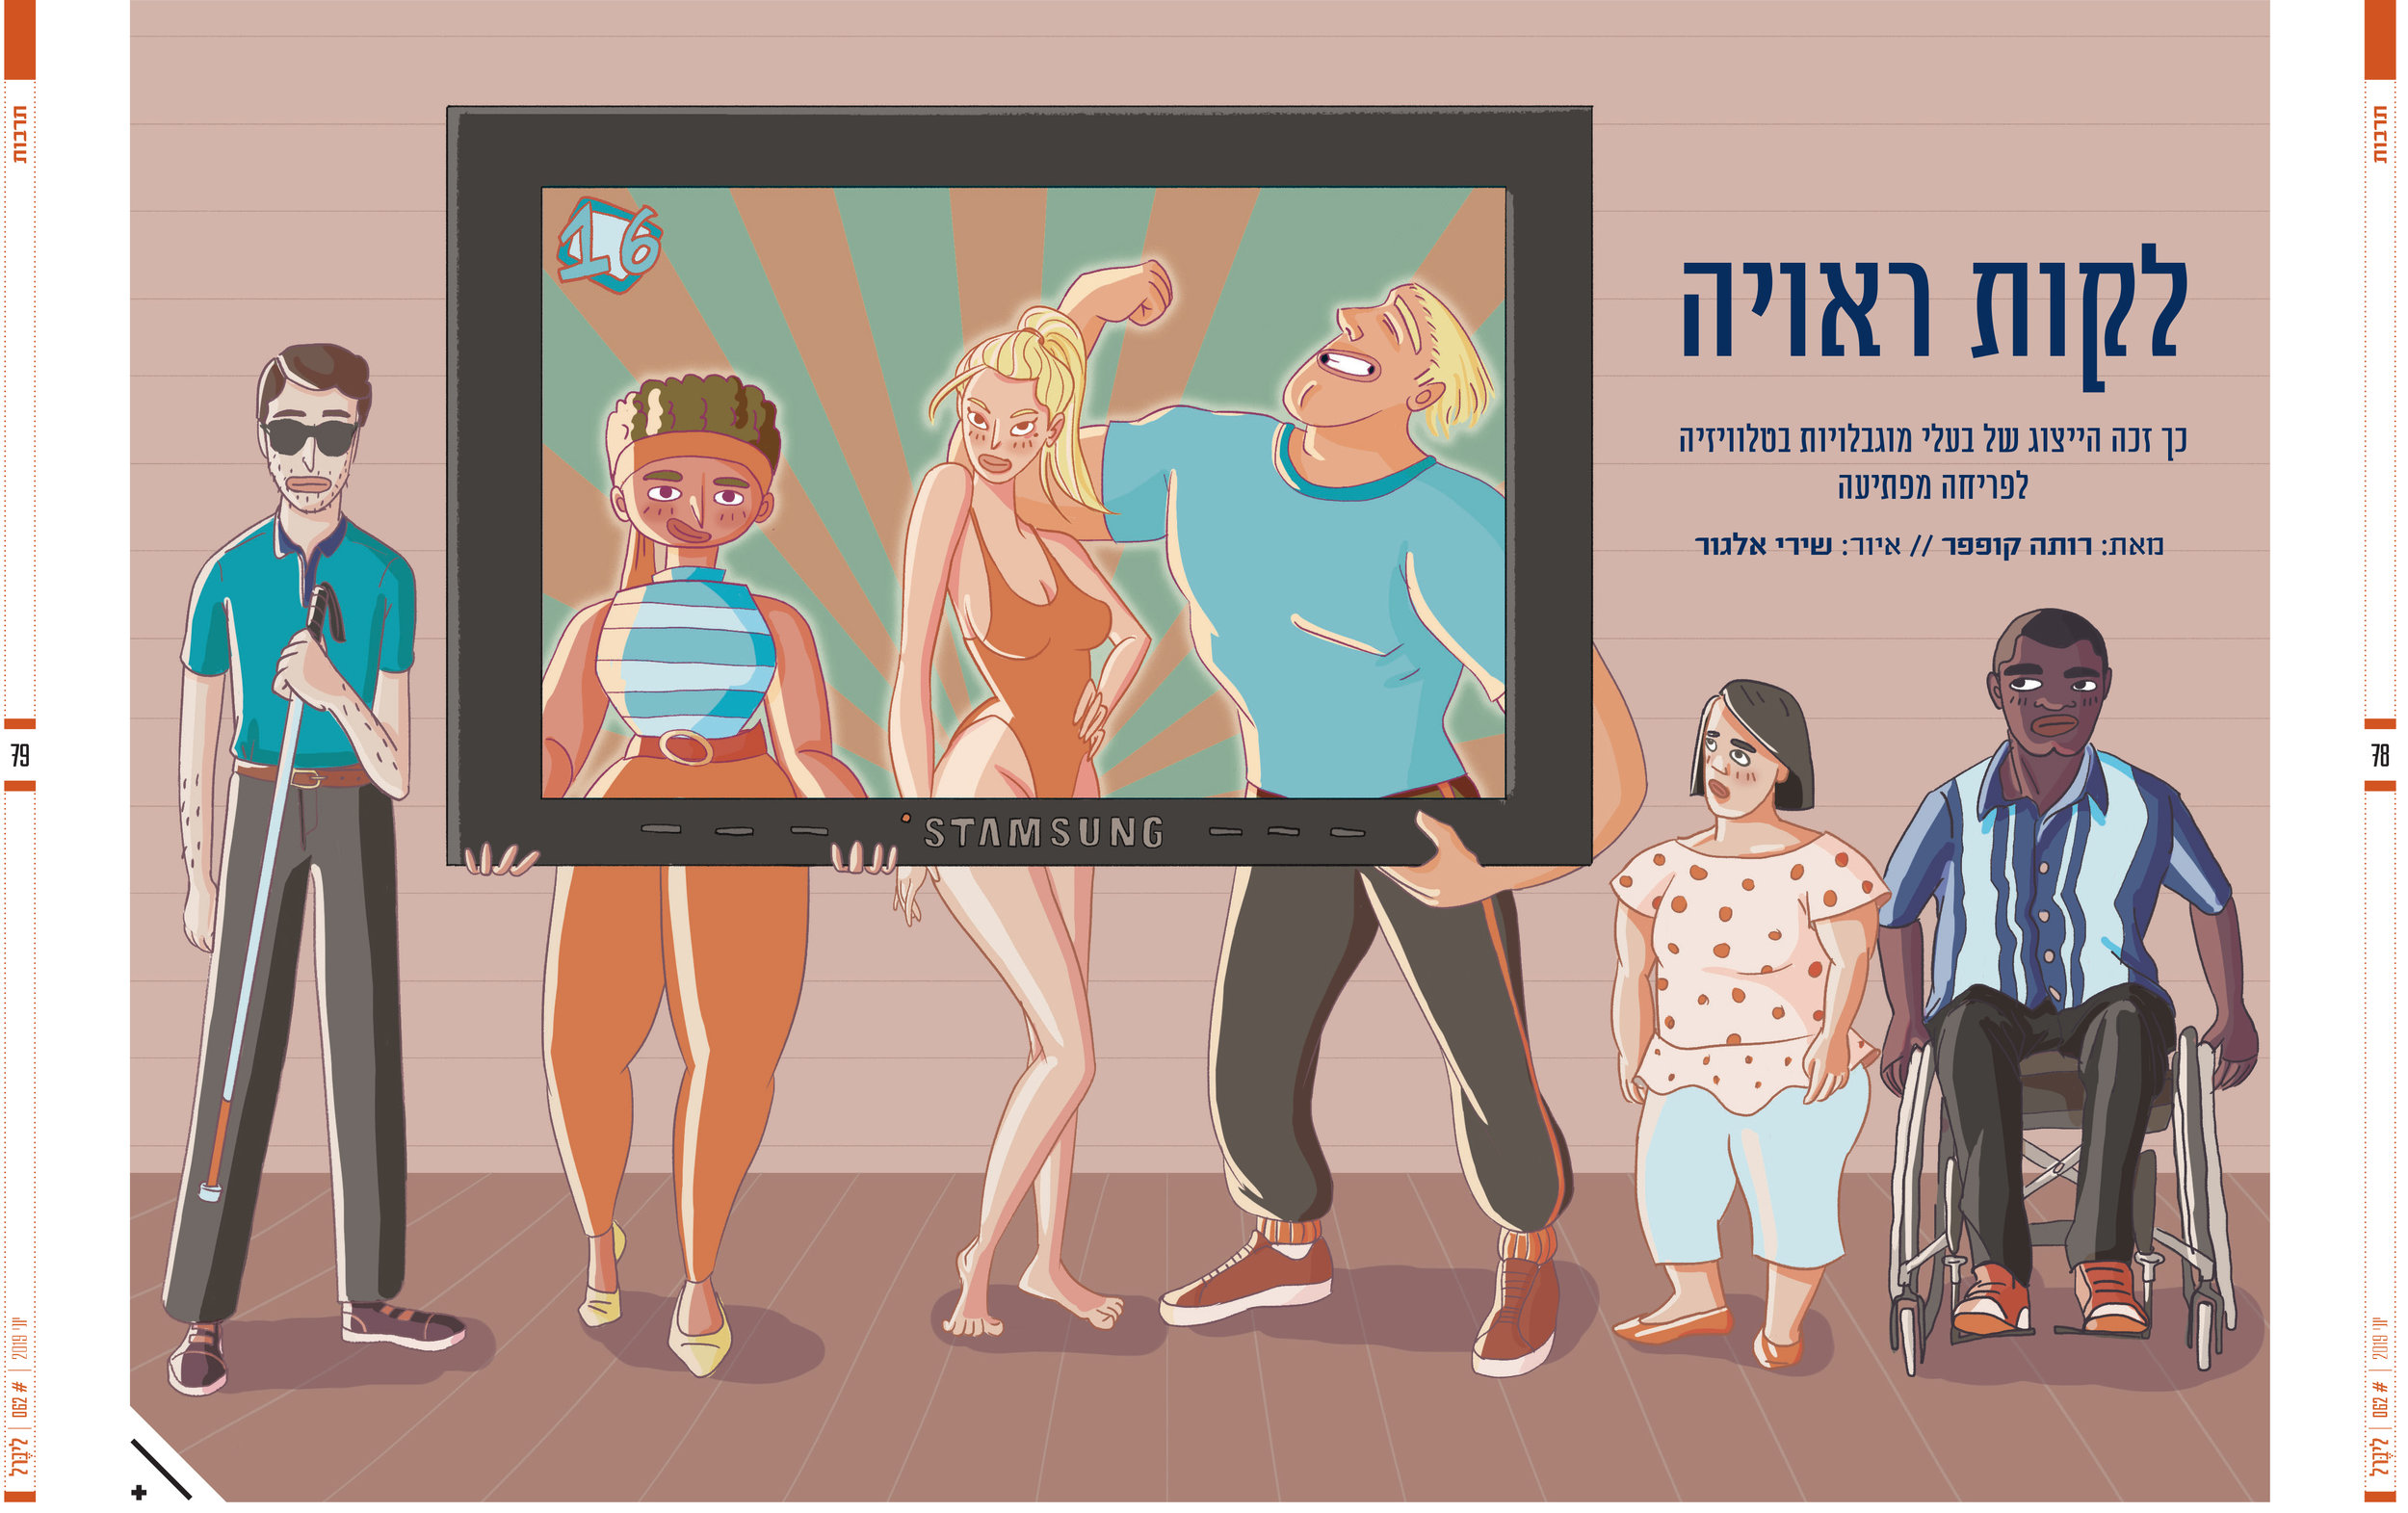 Liberal Magazine, June 2019  About the representation of disabilities in the media.